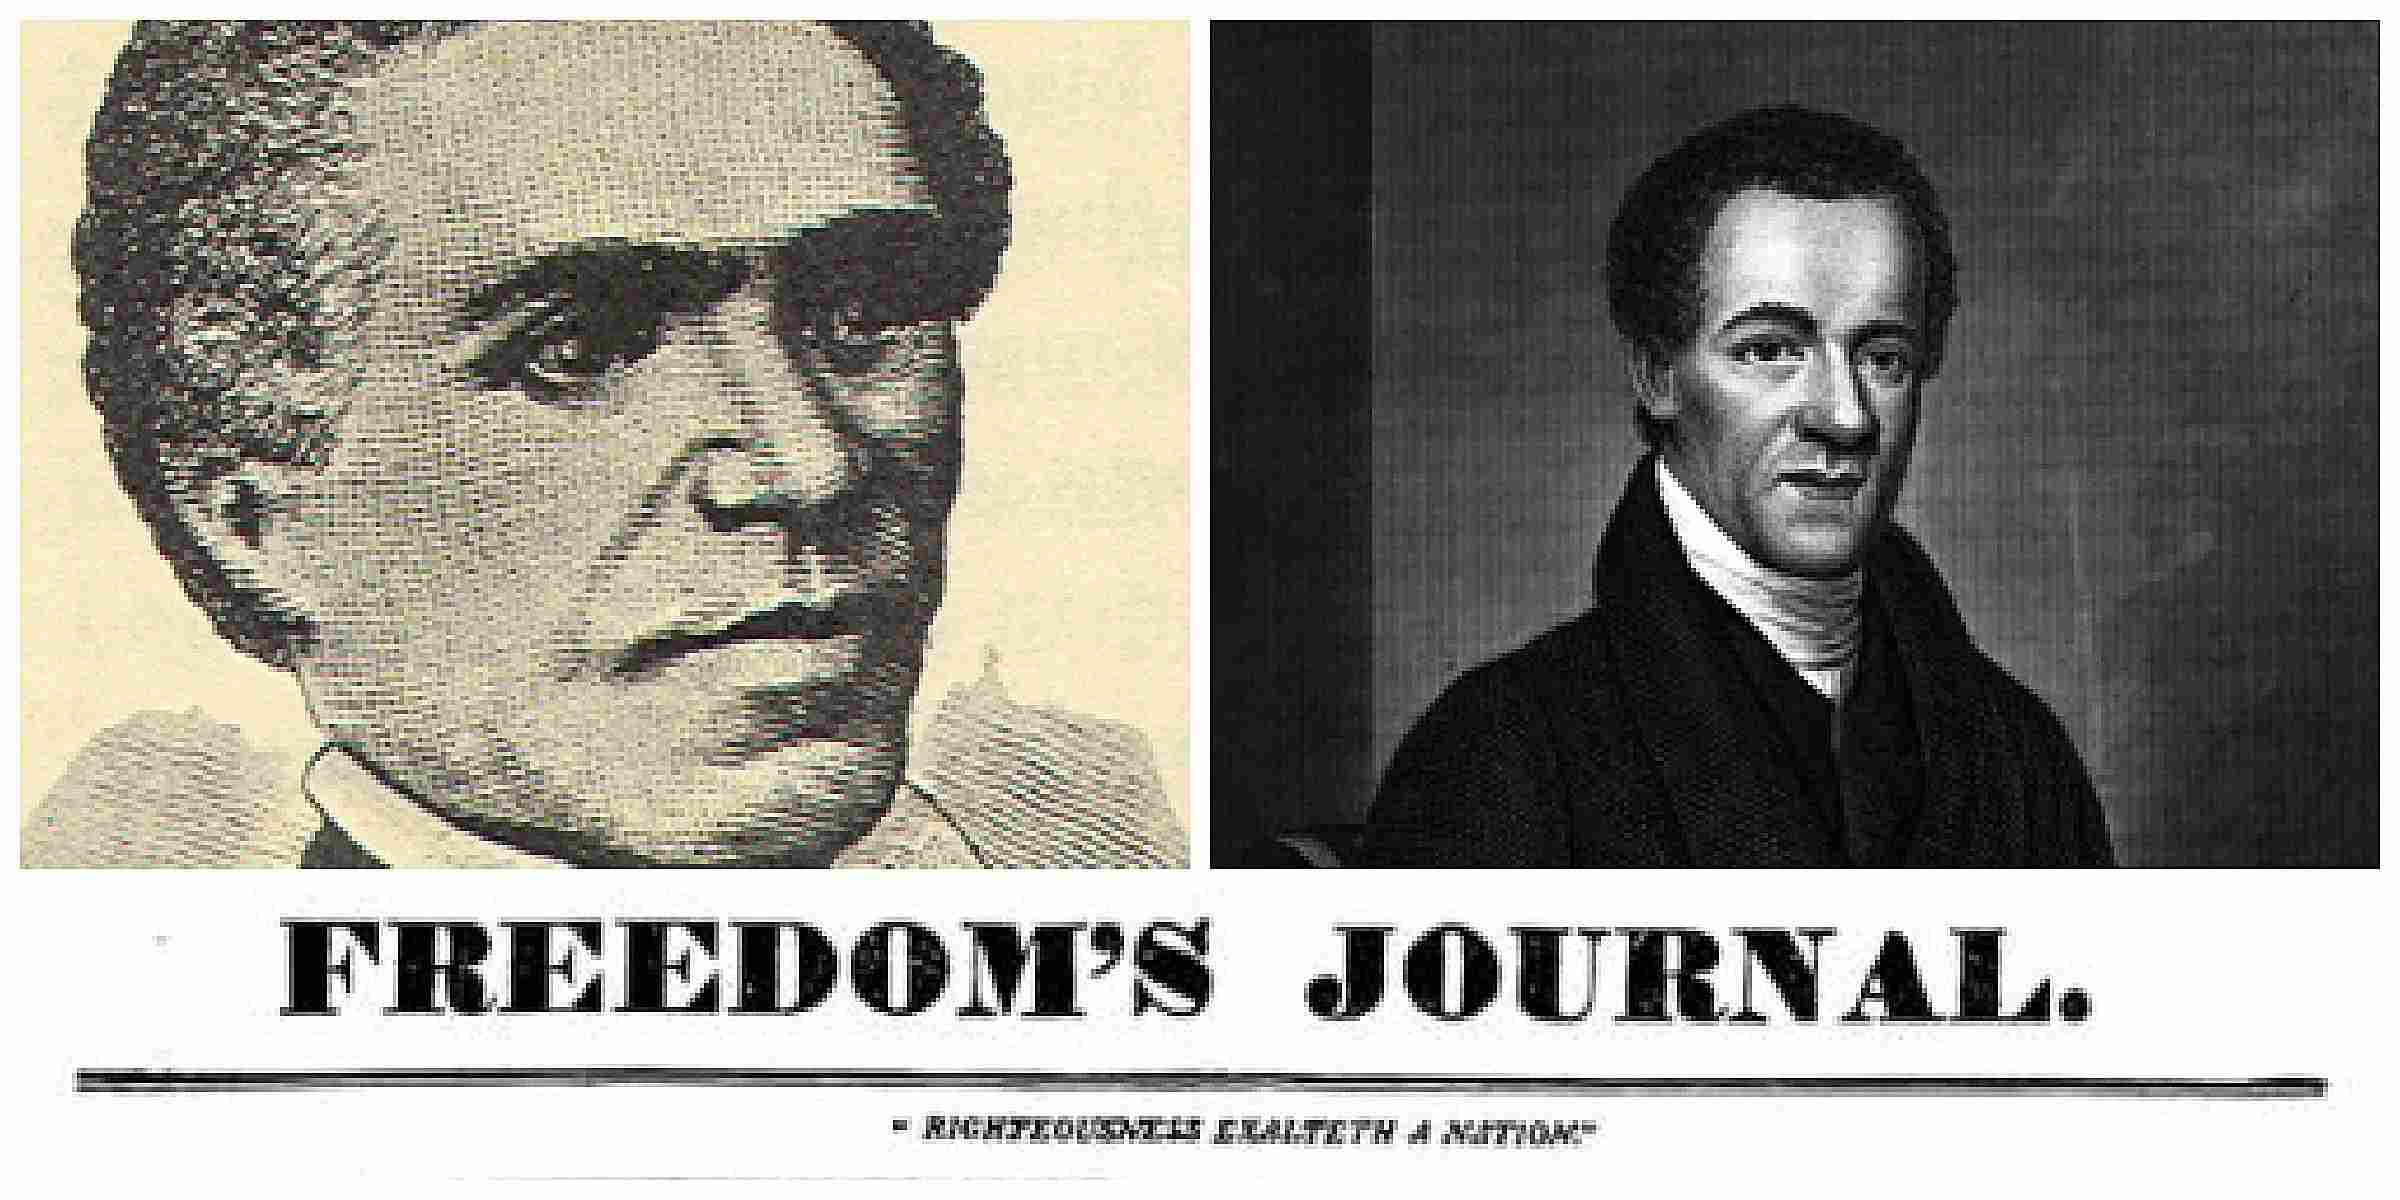 Portraits of John B. Russwurm and Samuel B. Cornish on the cover of a Freedom's Journal